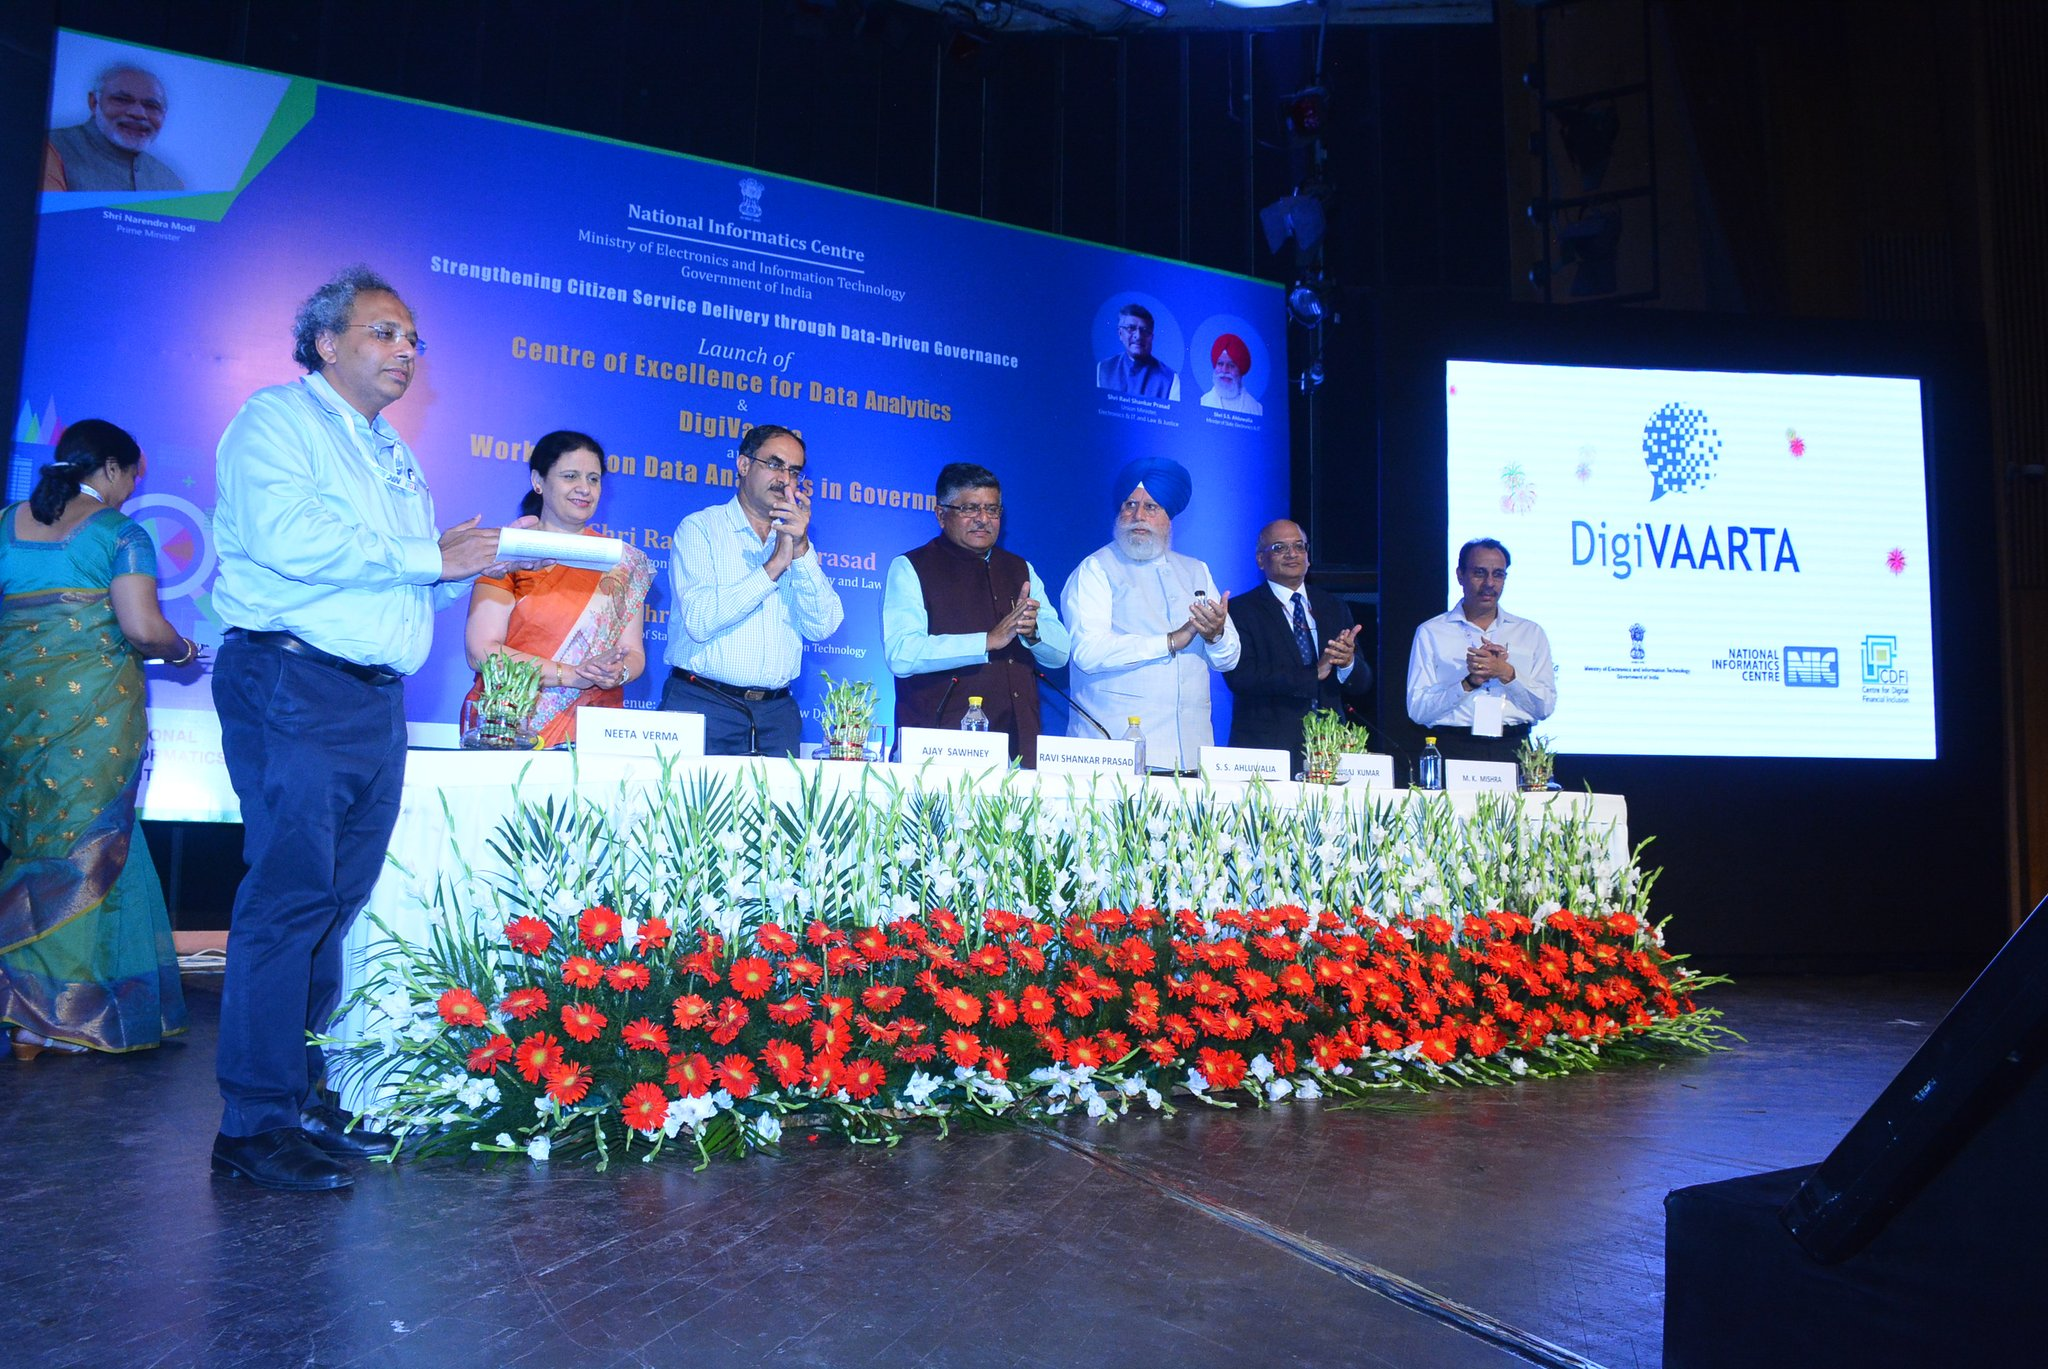 DigiVAARTA: Enabling dialogue with the common man